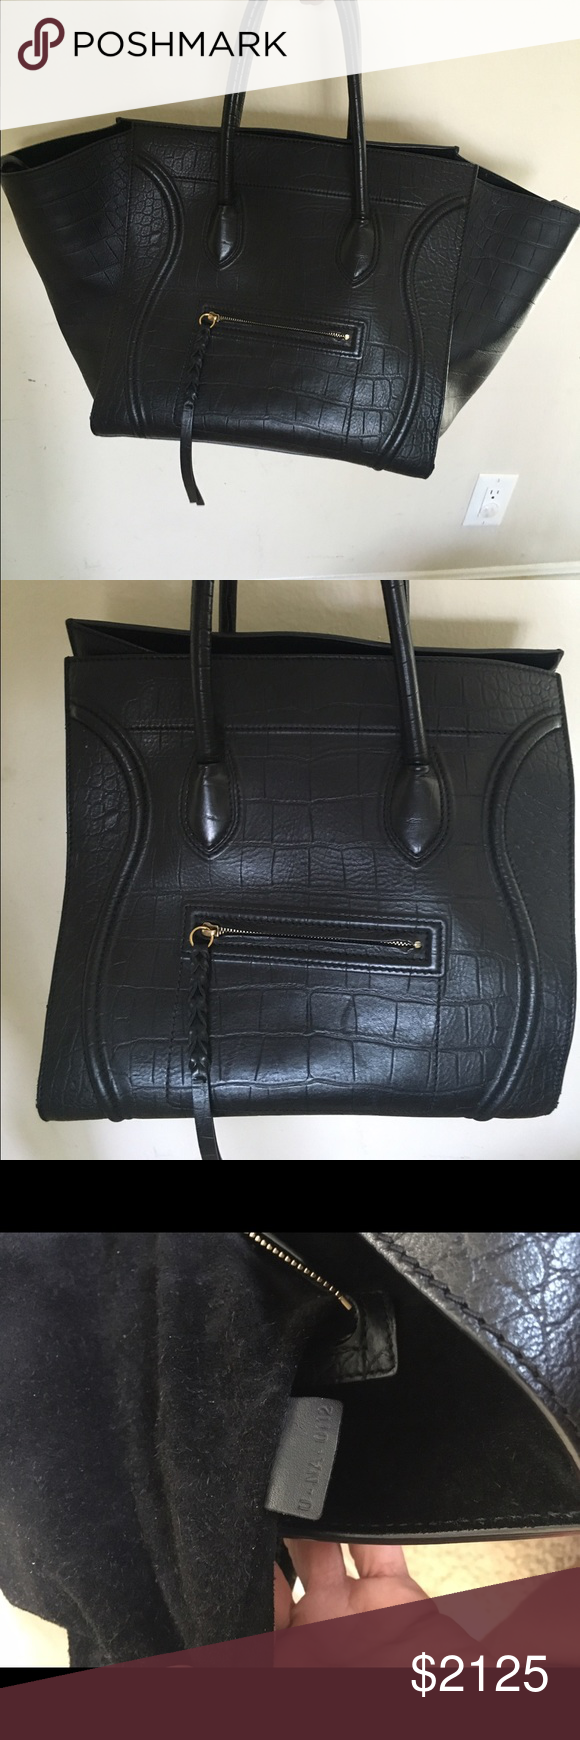 20b5c4112fe0 Celine croc stamped calfskin phantom luggage tote This is a very hard to  find Celine Phantom bag. It's in excellent condition. No scratches or marks  on the ...